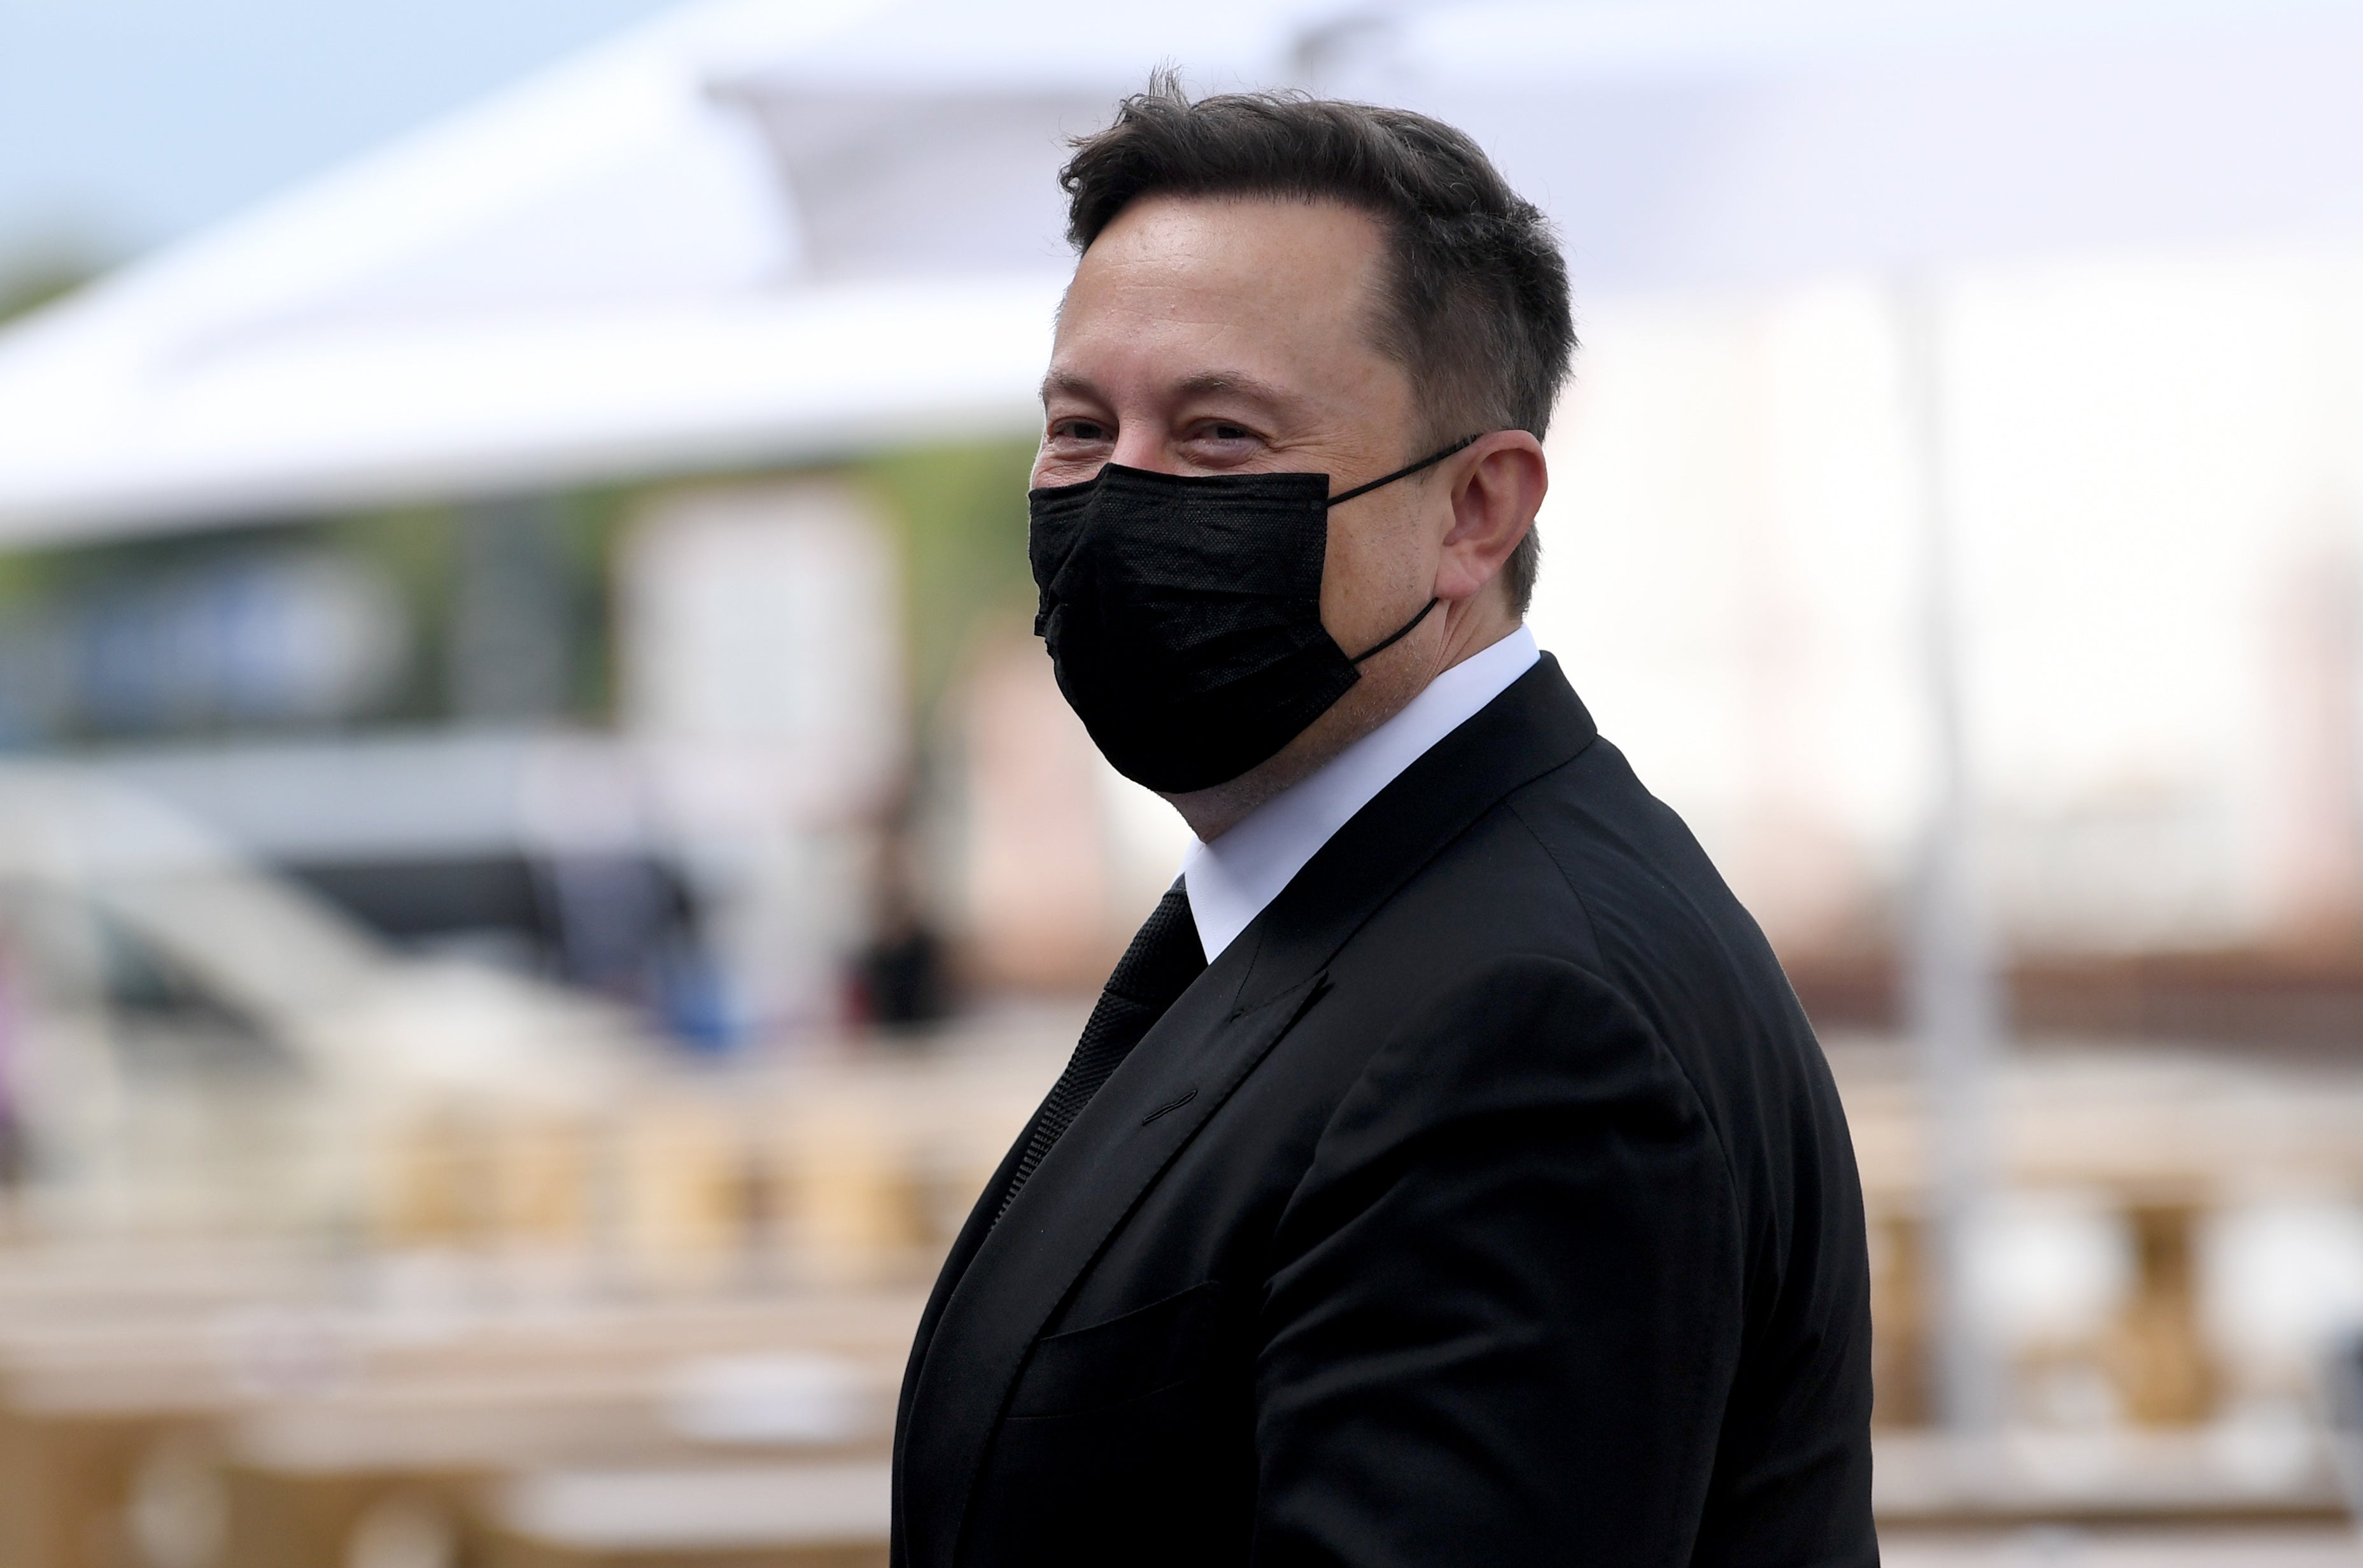 Elon Musk Confirms He Did Have Covid After Tweeting That Tests Were Extremely Bogus The Independent